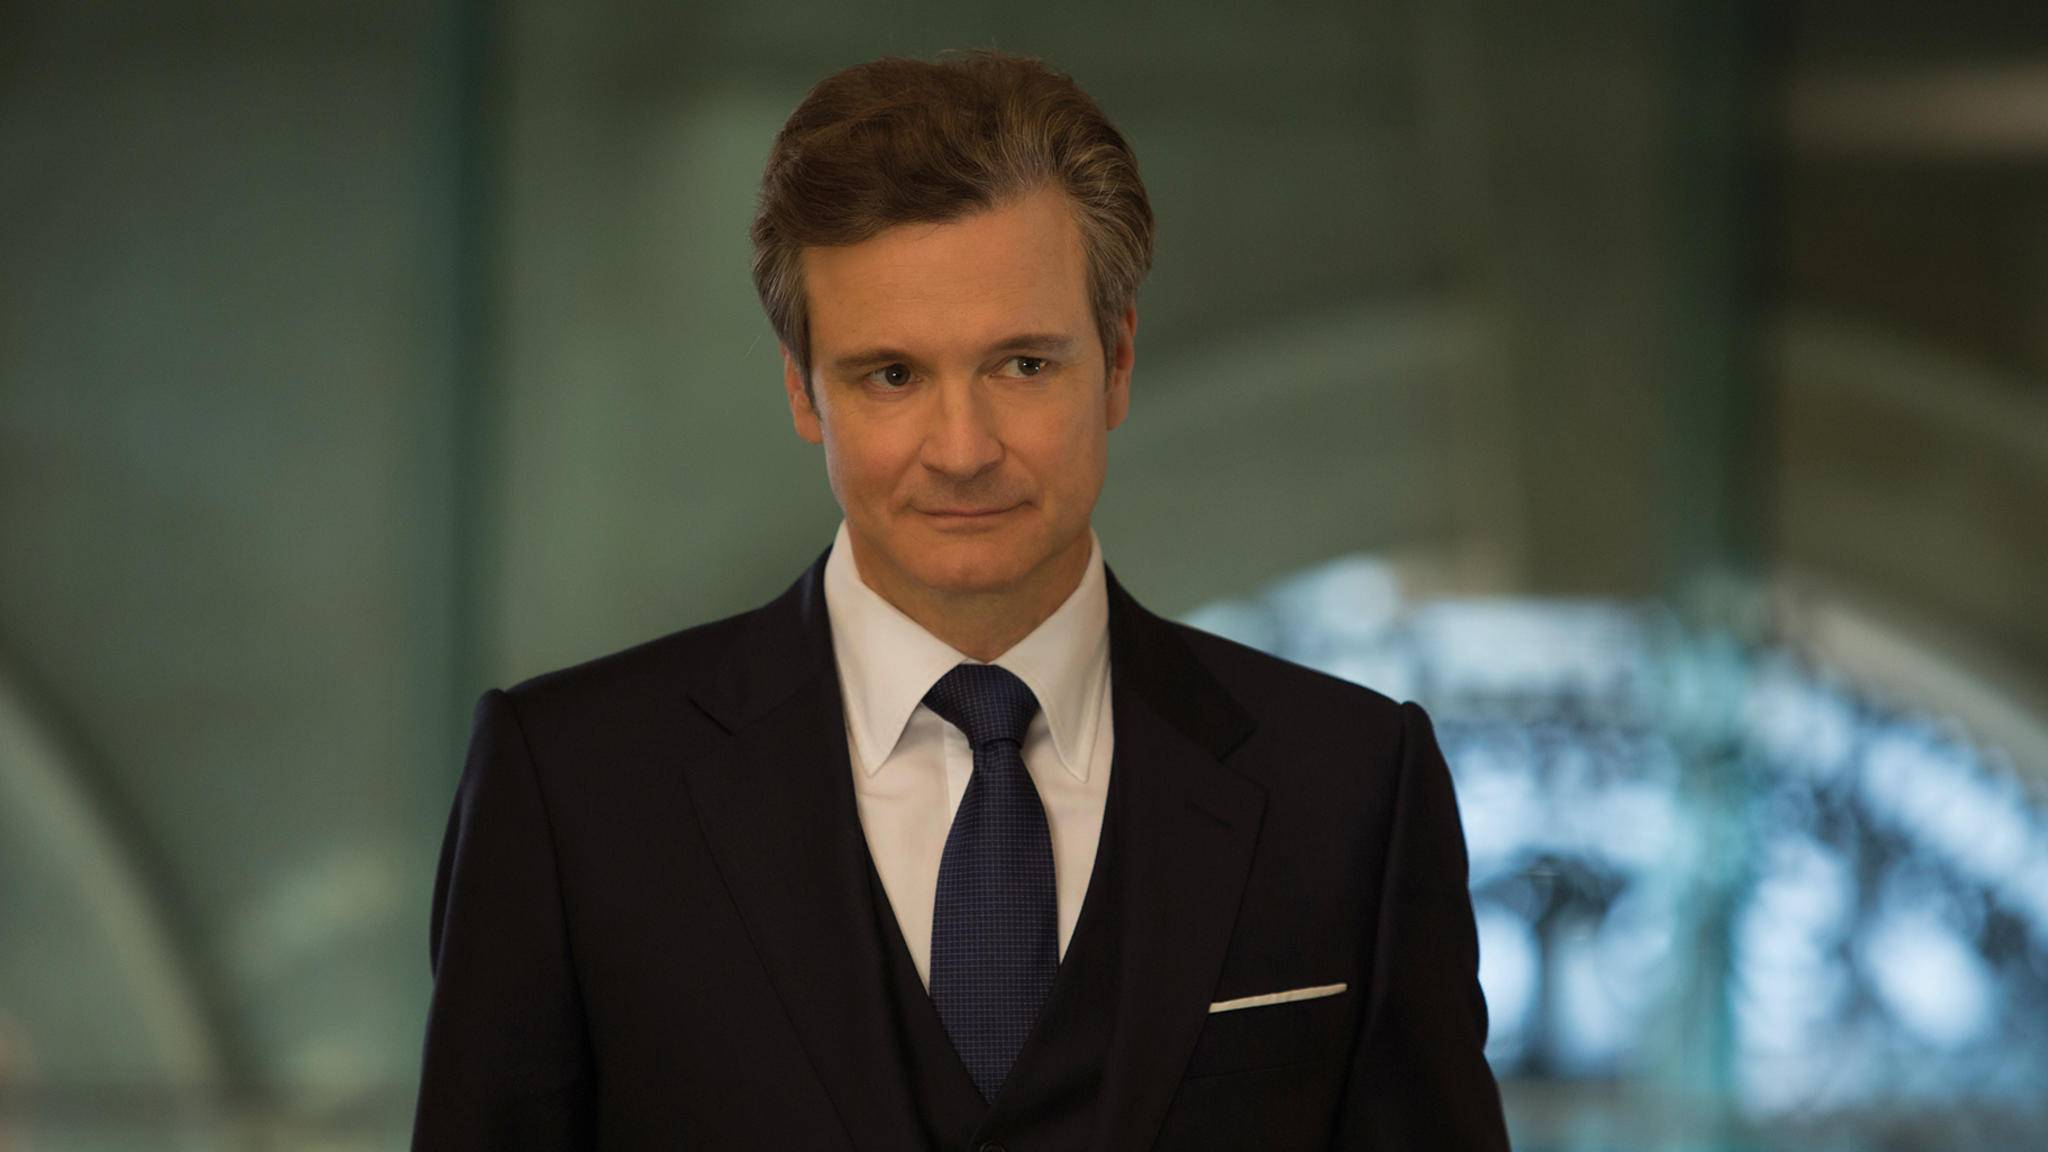 BRIDGET JONES' BABY colin firth